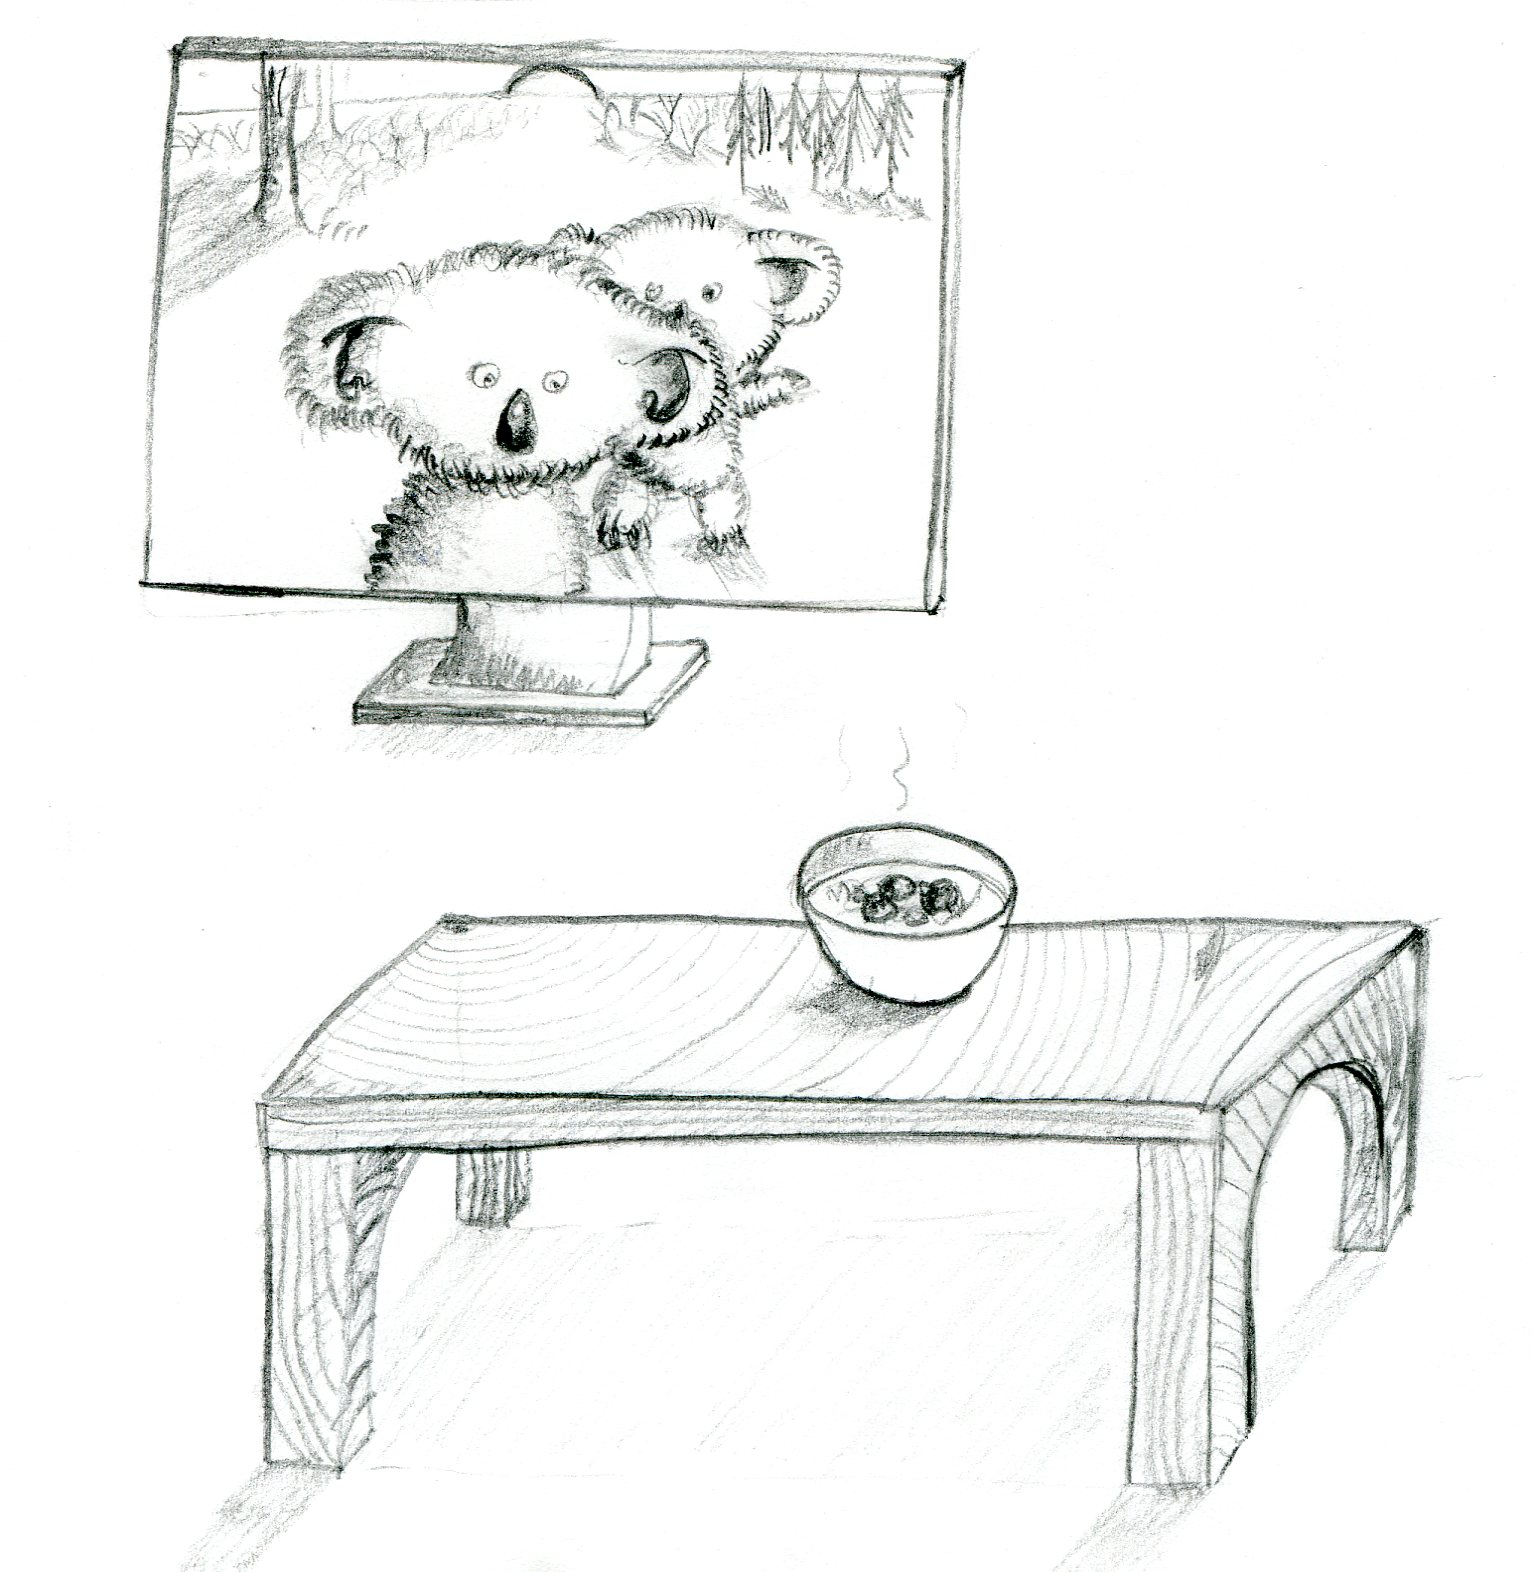 Day 8 - Koala on TV starring at a bowl of soup on a table.